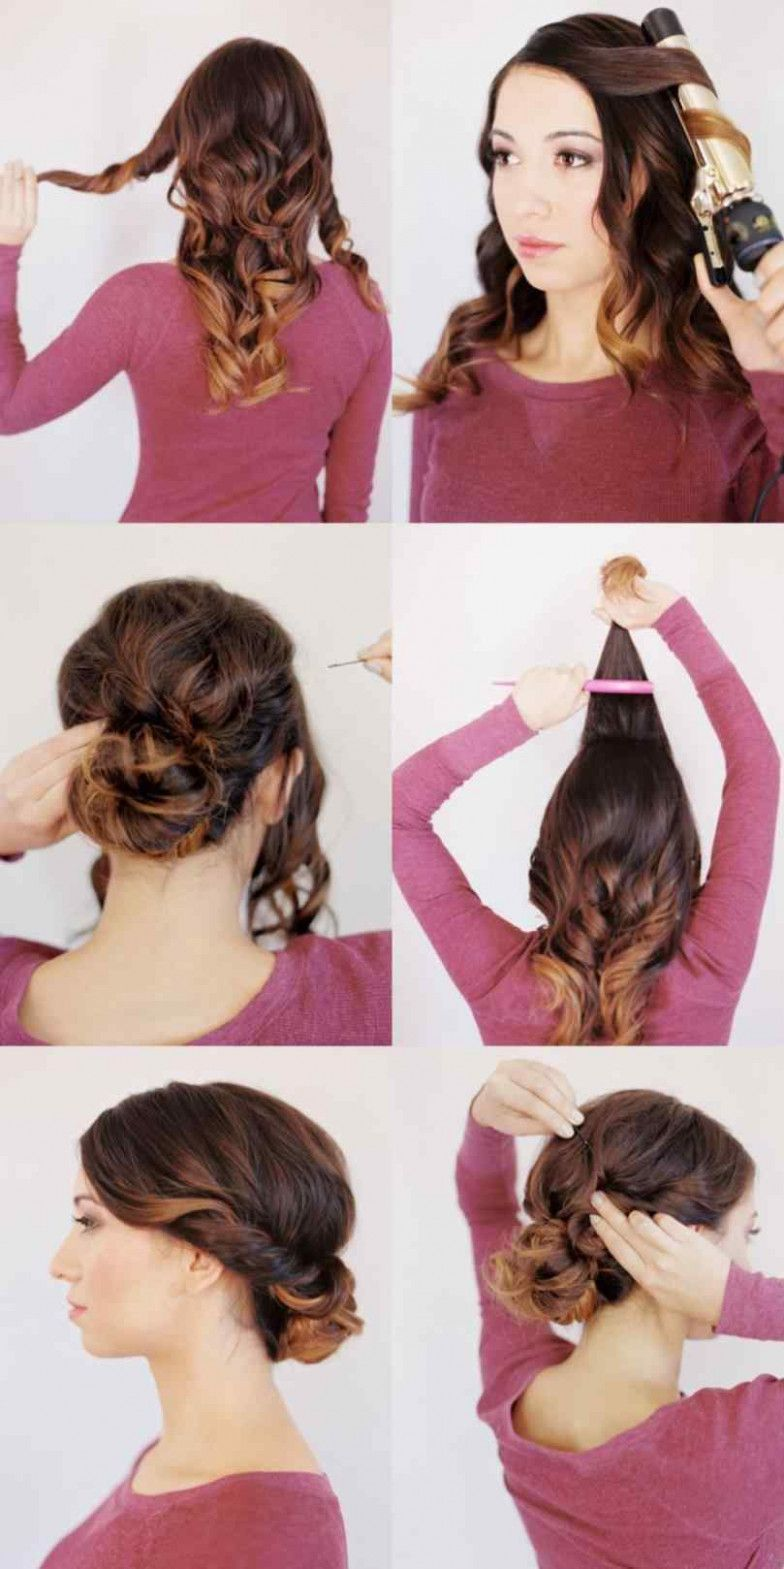 Diy wedding hairstyles sinatam in pos hair pinterest diy